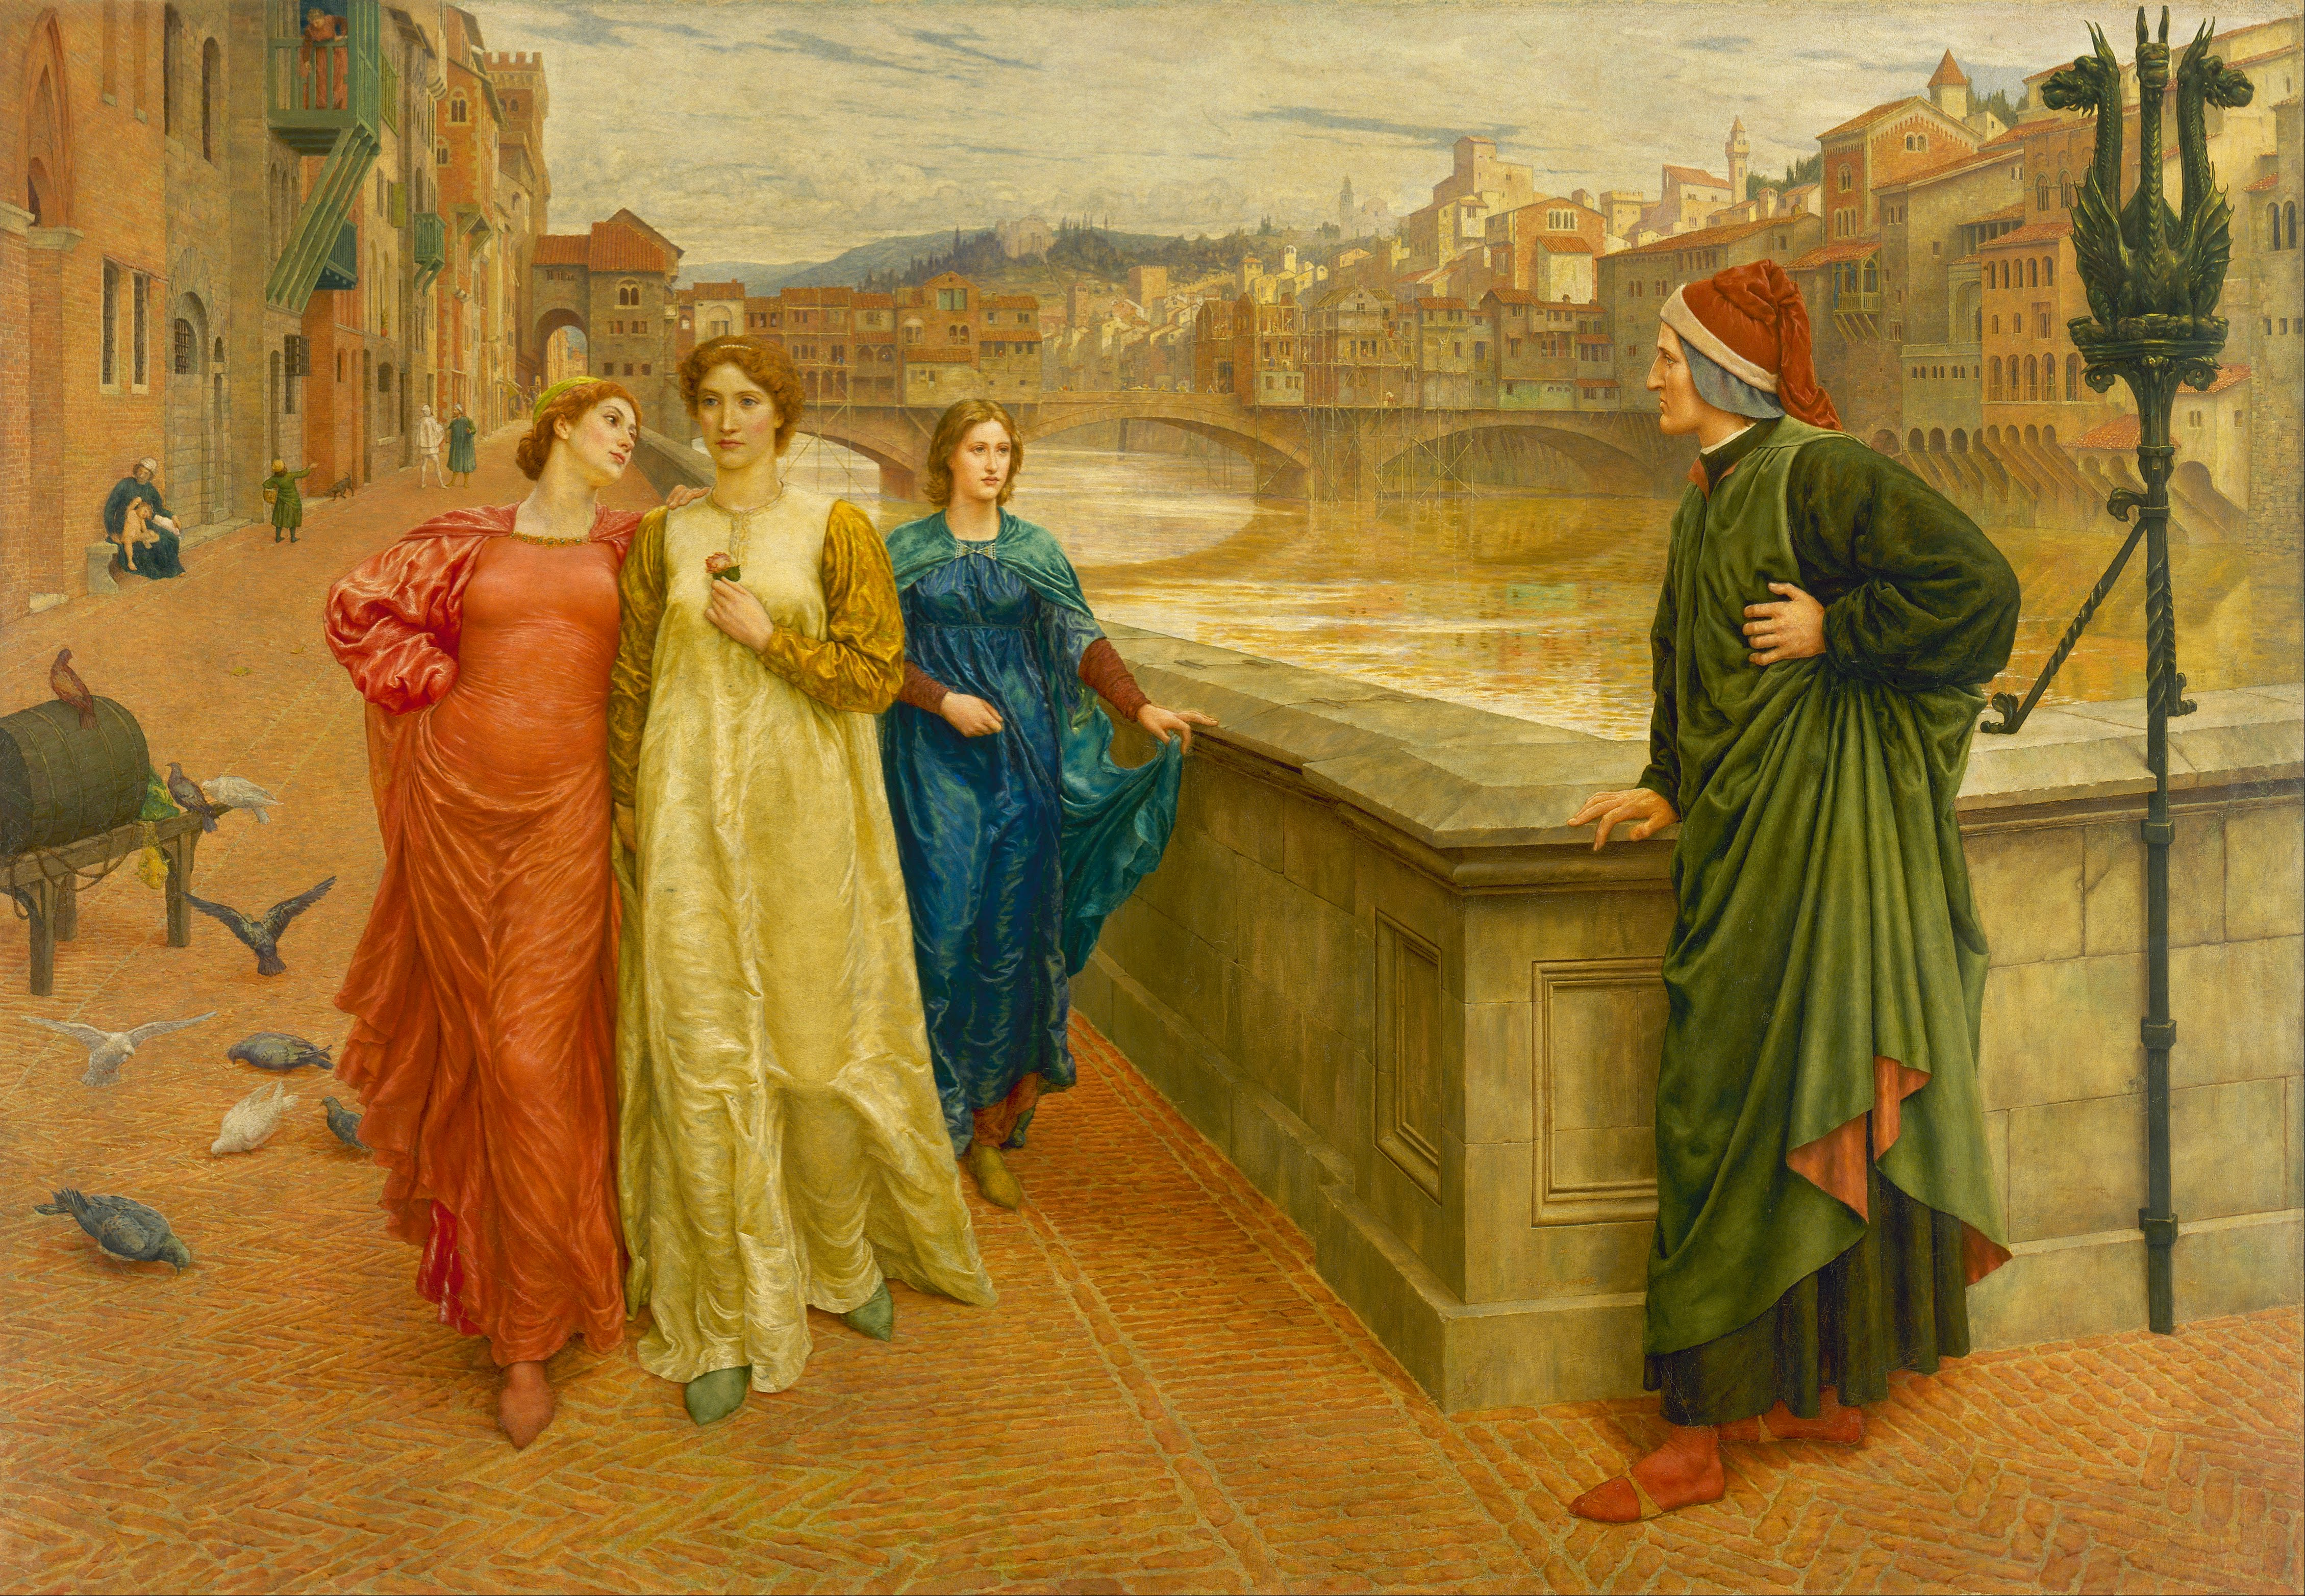 http://upload.wikimedia.org/wikipedia/commons/5/5a/Henry_Holiday_-_Dante_and_Beatrice_-_Google_Art_Project.jpg